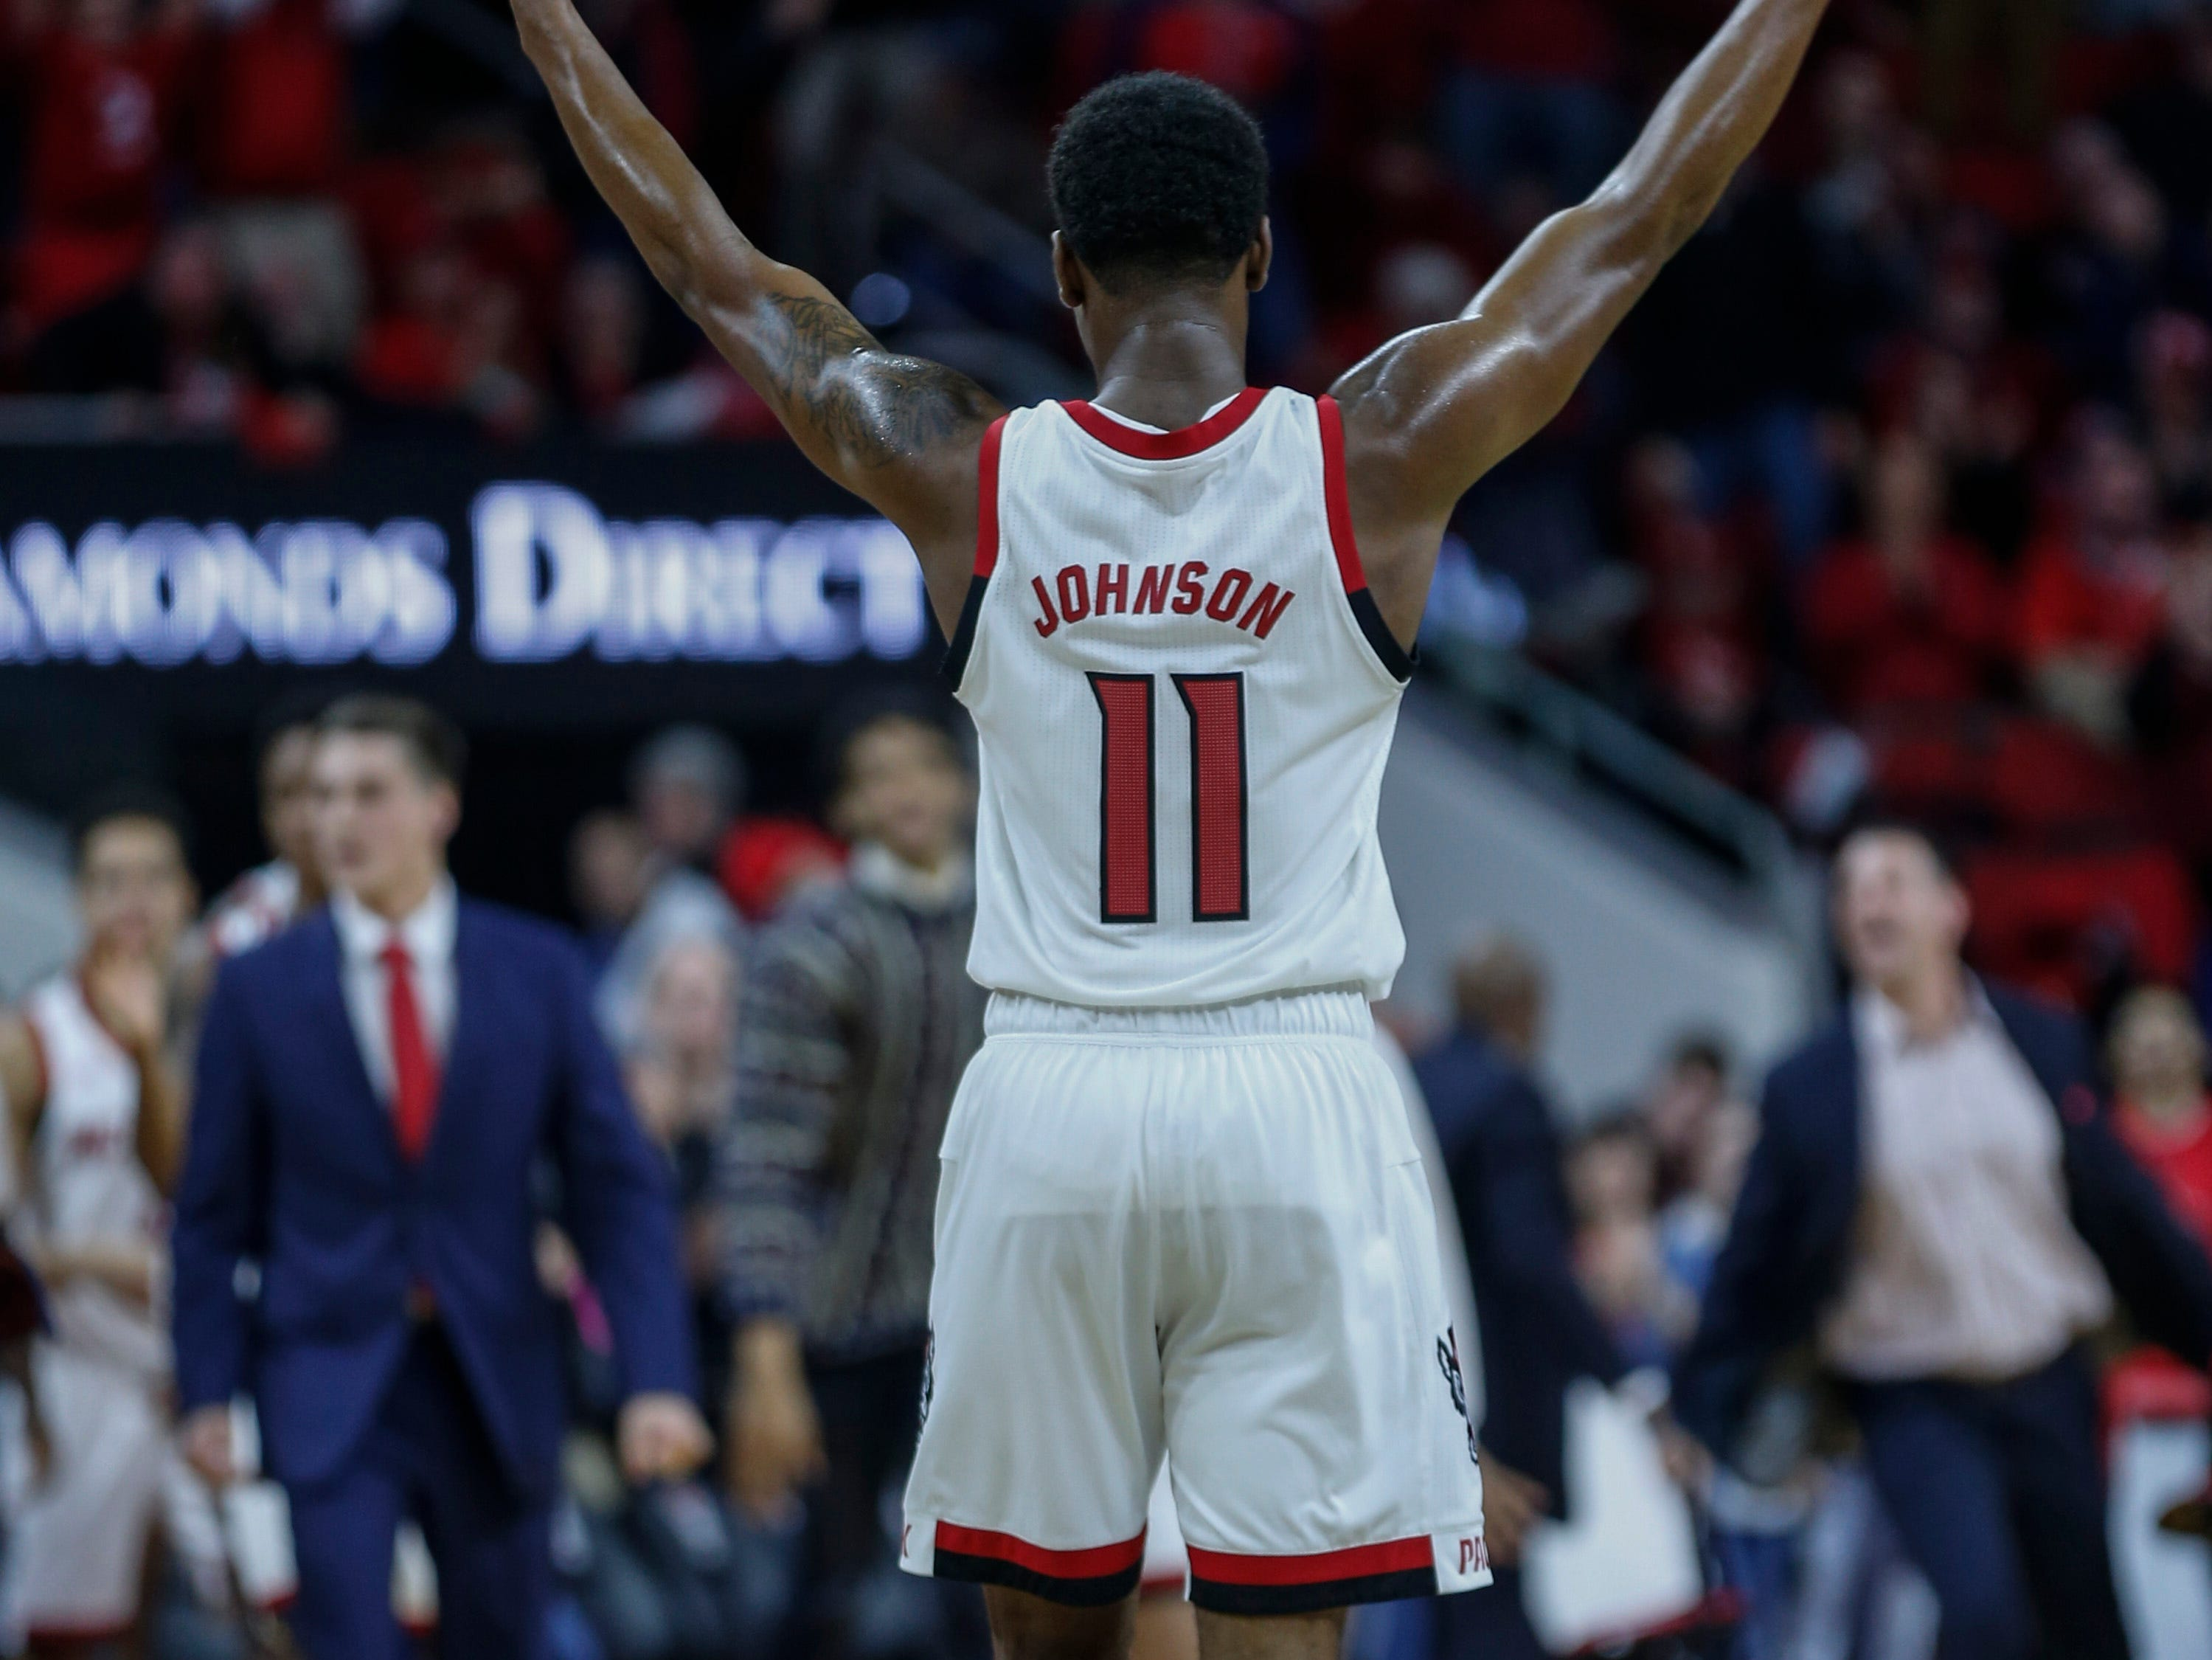 Dec 19, 2018; Raleigh, NC, USA; North Carolina State Wolfpack guard Markell Johnson celebrates as the Wolfpack defeat the Auburn Tigers 78-71 at PNC Arena.  Mandatory Credit: Nell Redmond-USA TODAY Sports